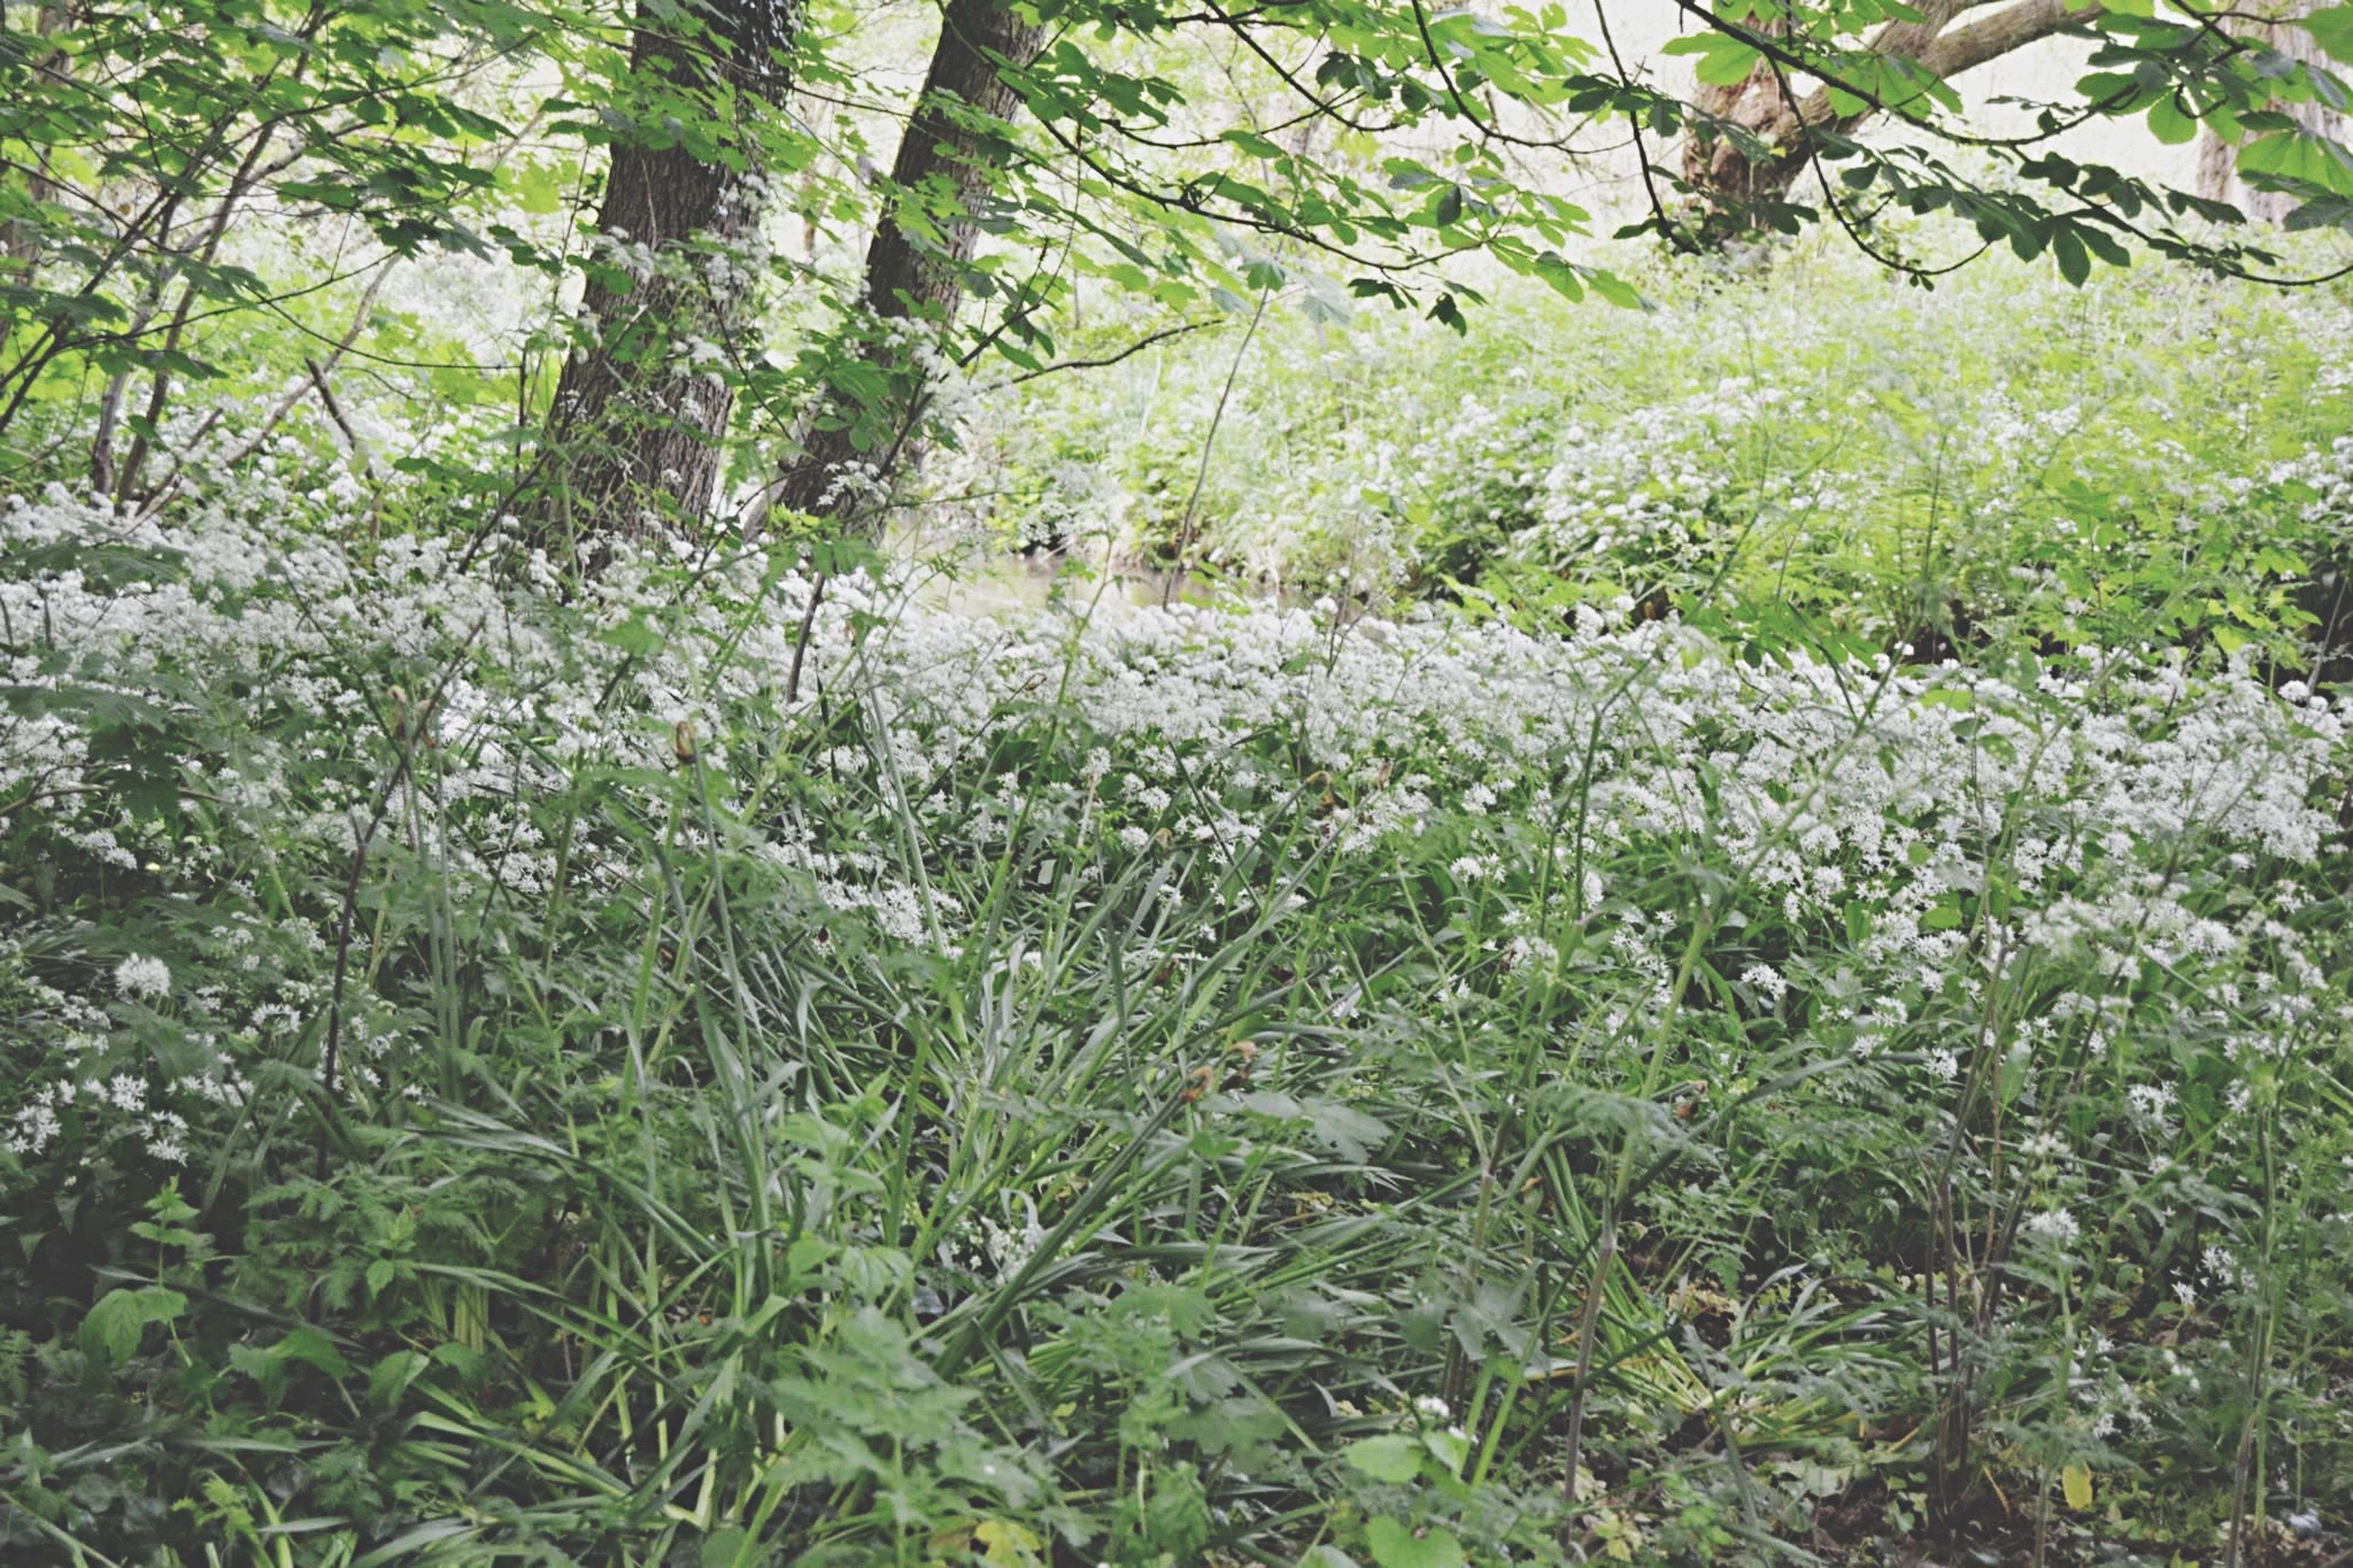 growth, tree, plant, green color, beauty in nature, nature, tranquility, branch, tranquil scene, flower, grass, forest, day, lush foliage, freshness, scenics, outdoors, growing, field, no people